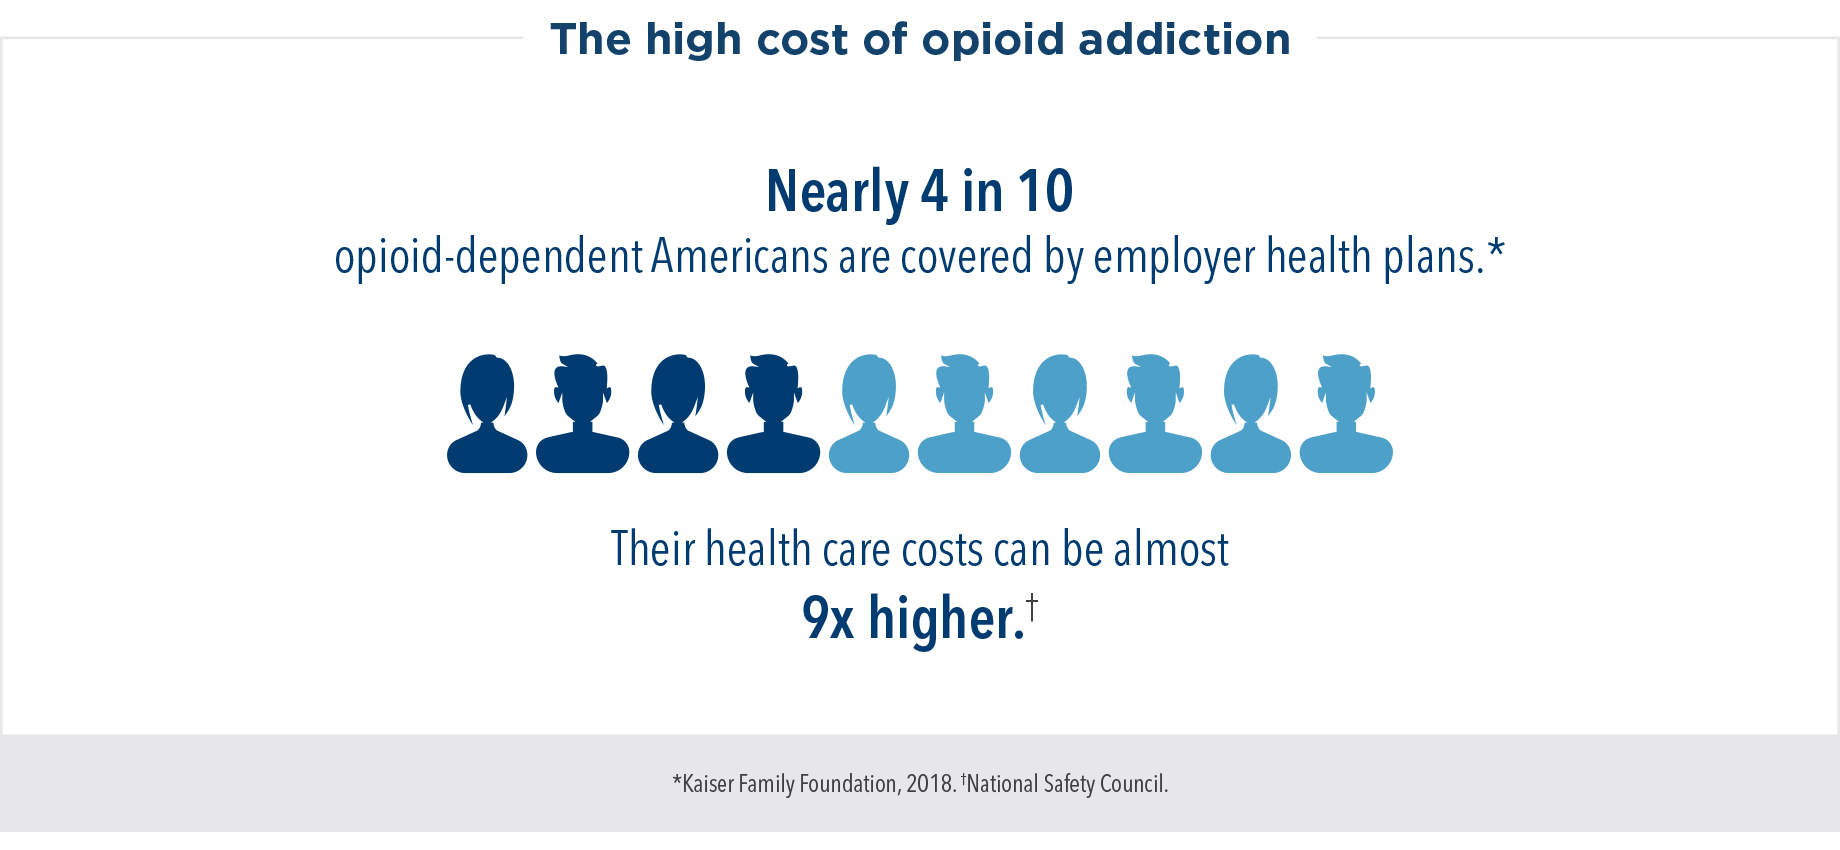 The high cost of opioid addiction: Nearly 4 in 10 opioid-dependent Americans are covered by employer health plans. Their health care costs cam be almost 9 times higher.